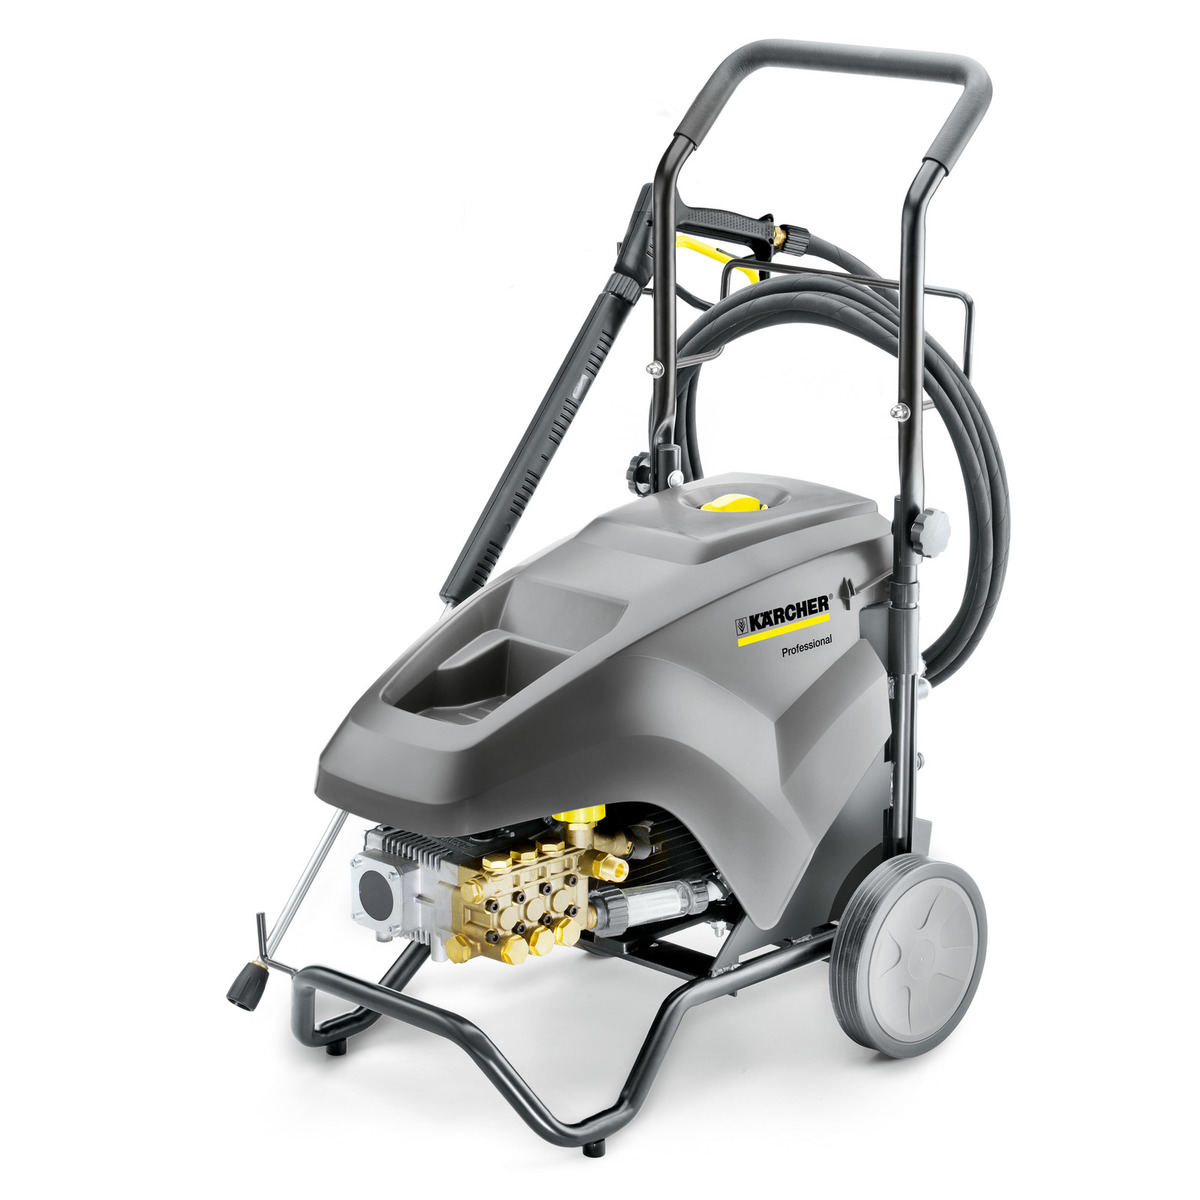 Karcher 110 Bar High Pressure Cold Water Cleaner HD711-4